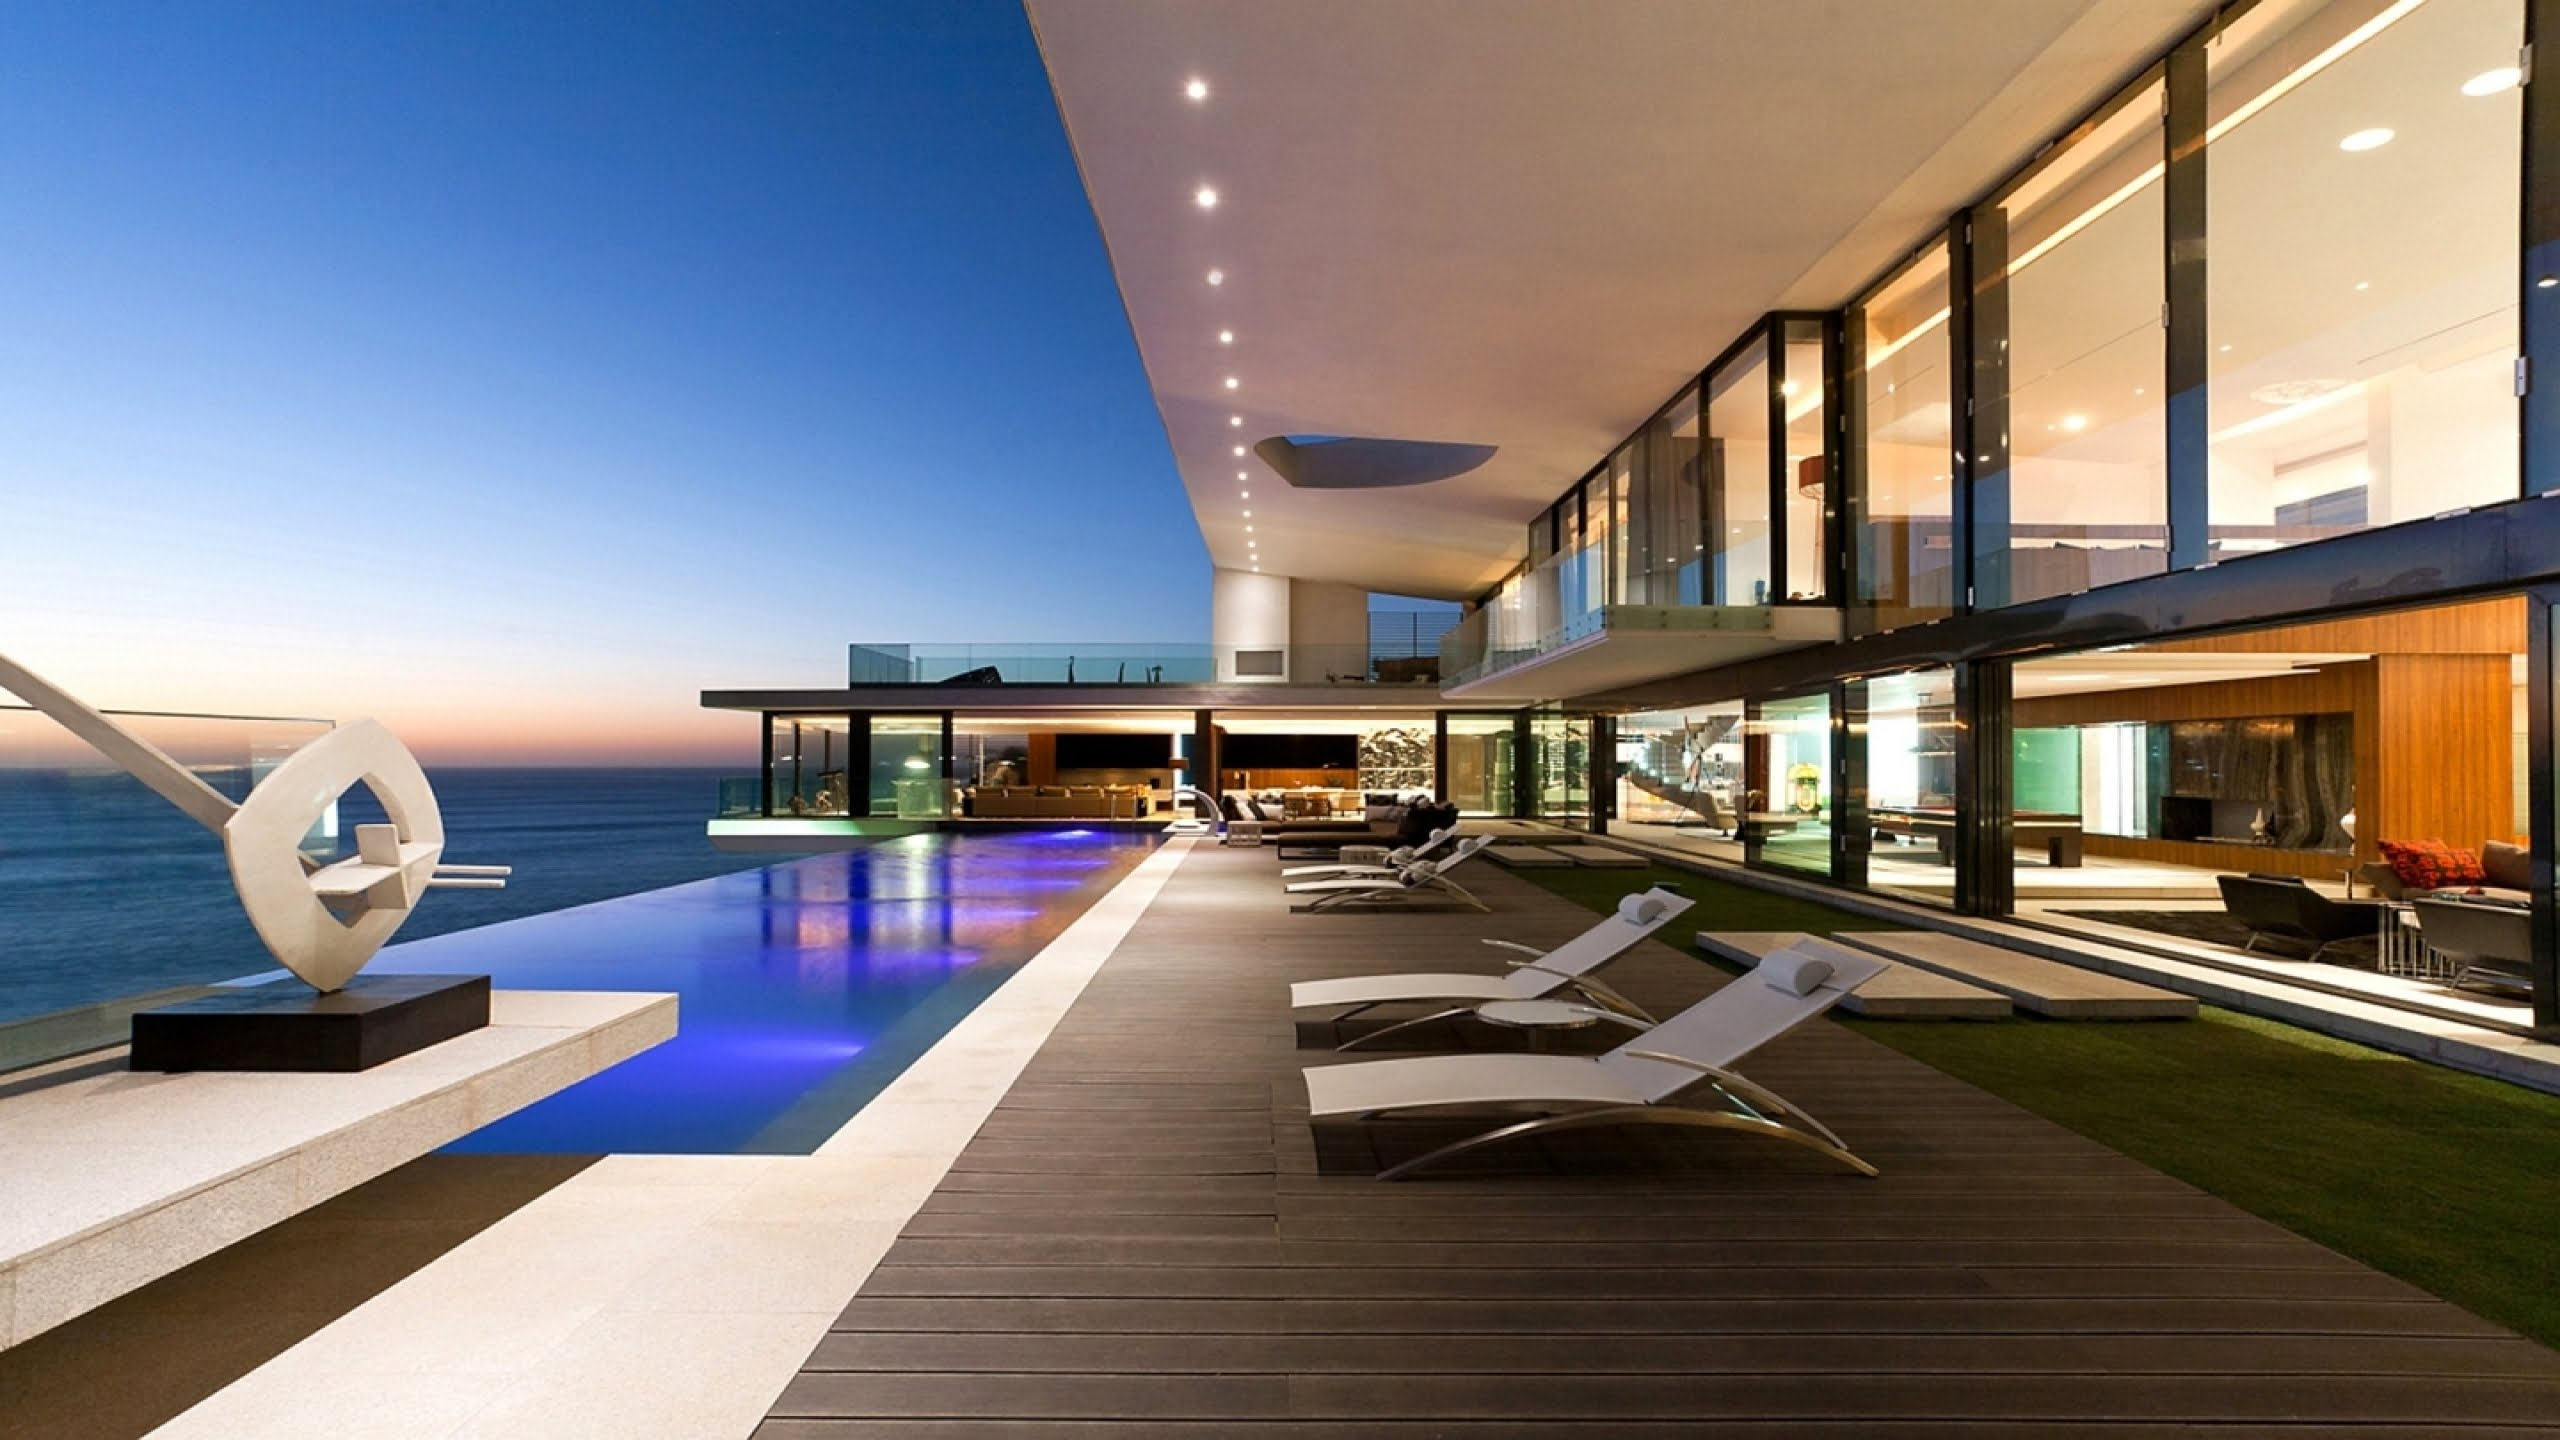 Luxury house wallpapers full hd pictures - Luxury house wallpaper ...